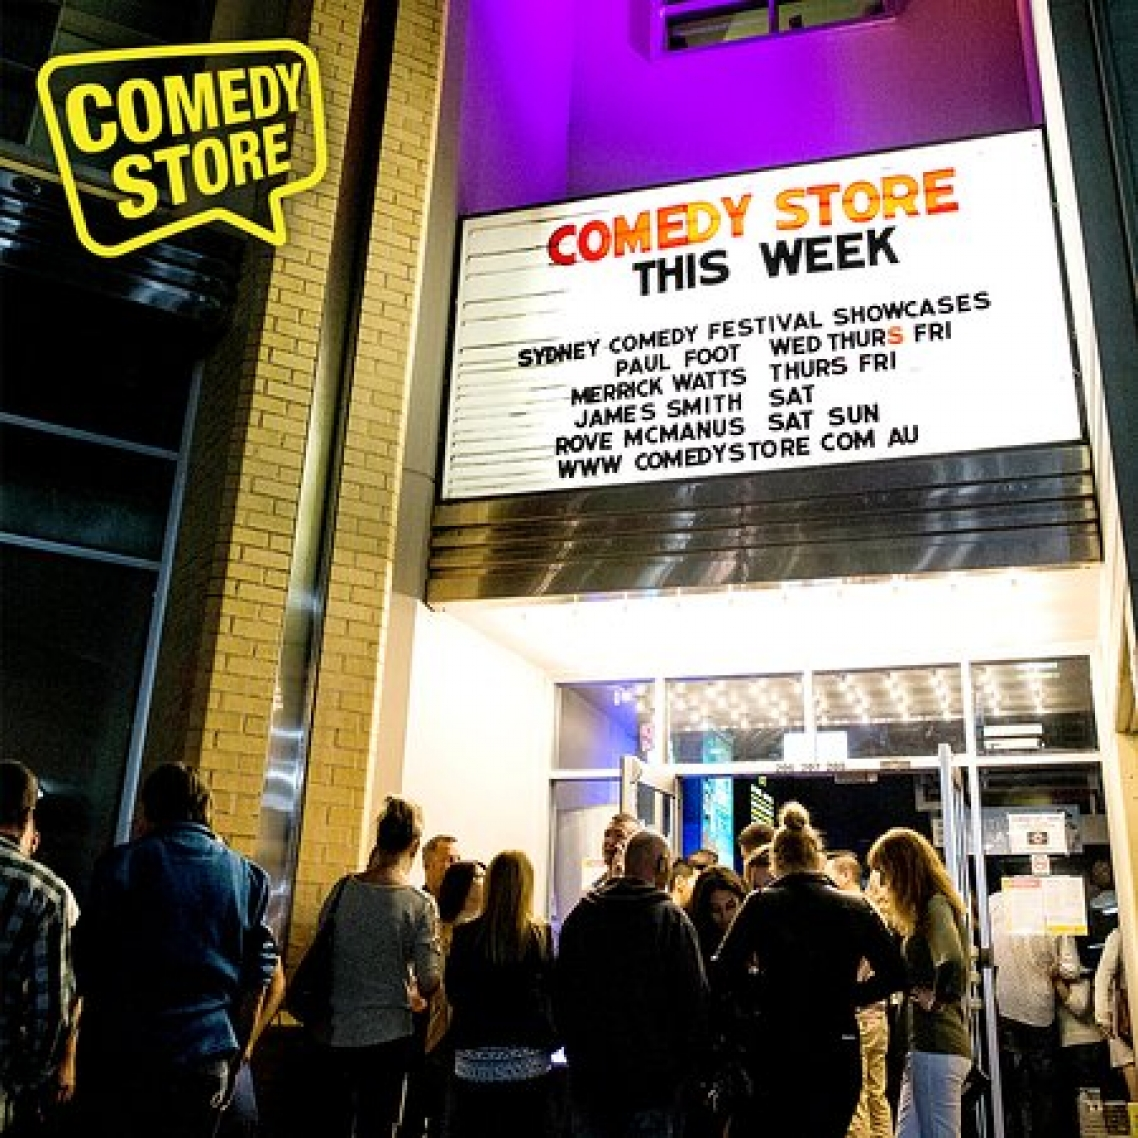 Comedy Store Main Image